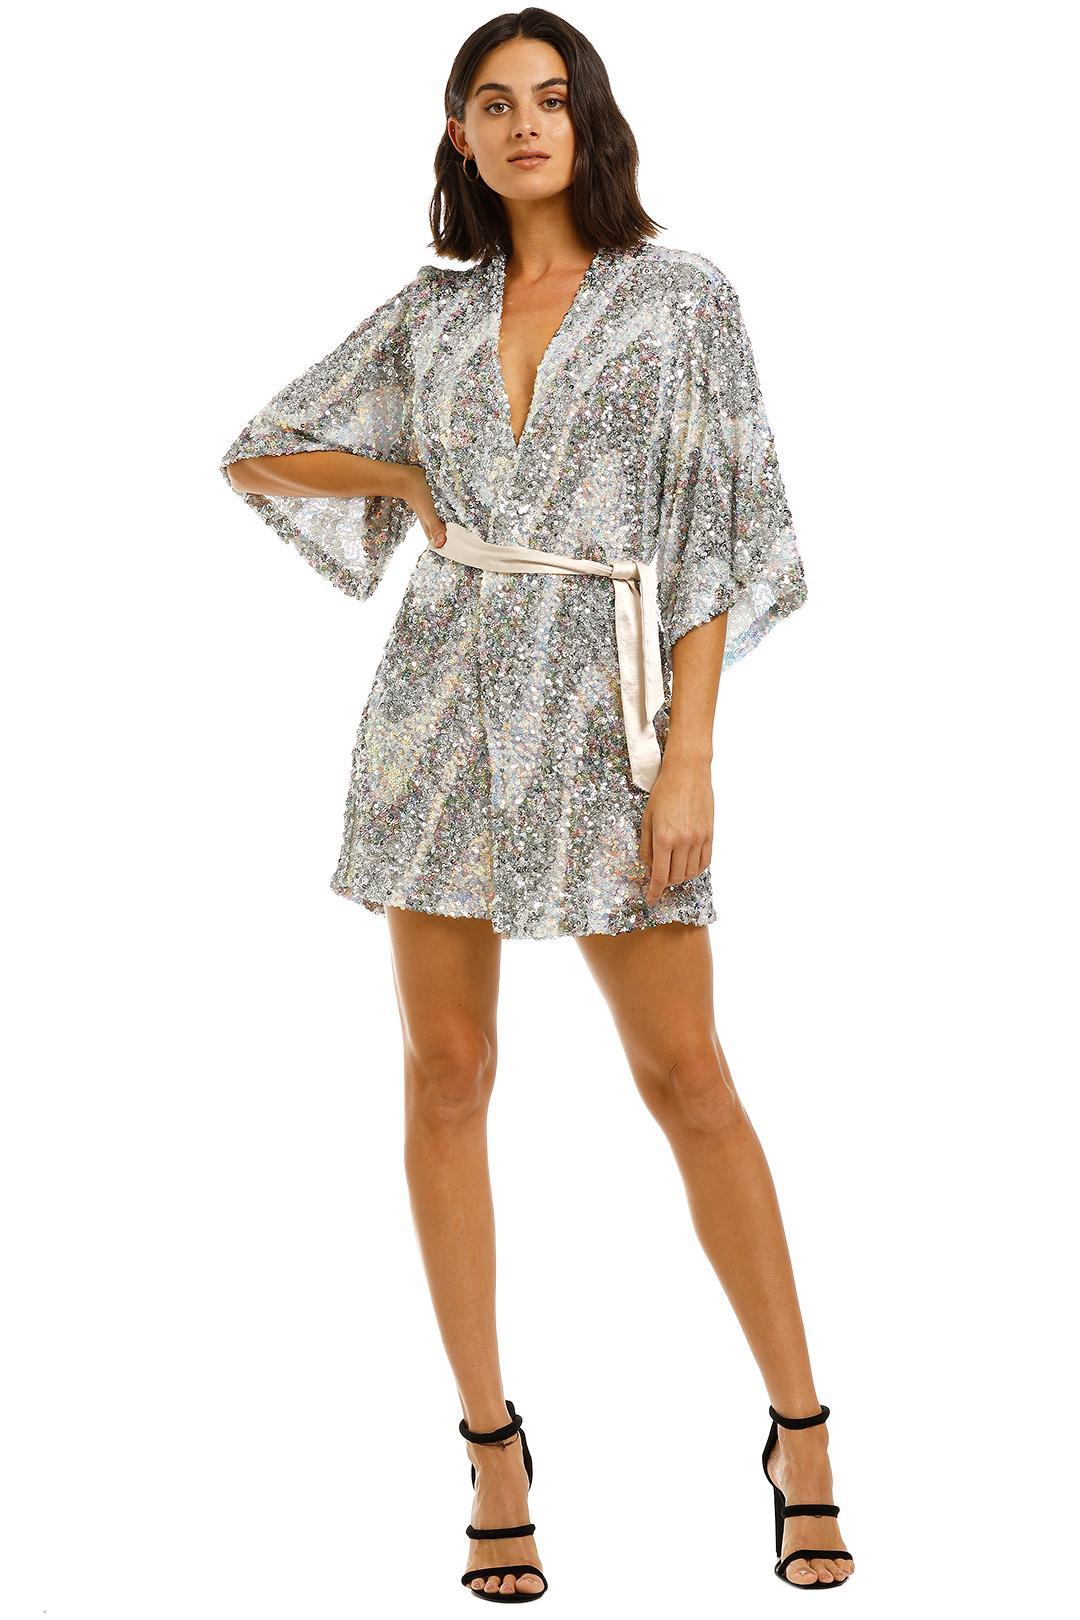 Winona - Rhapsody Wrap Dress - Multi